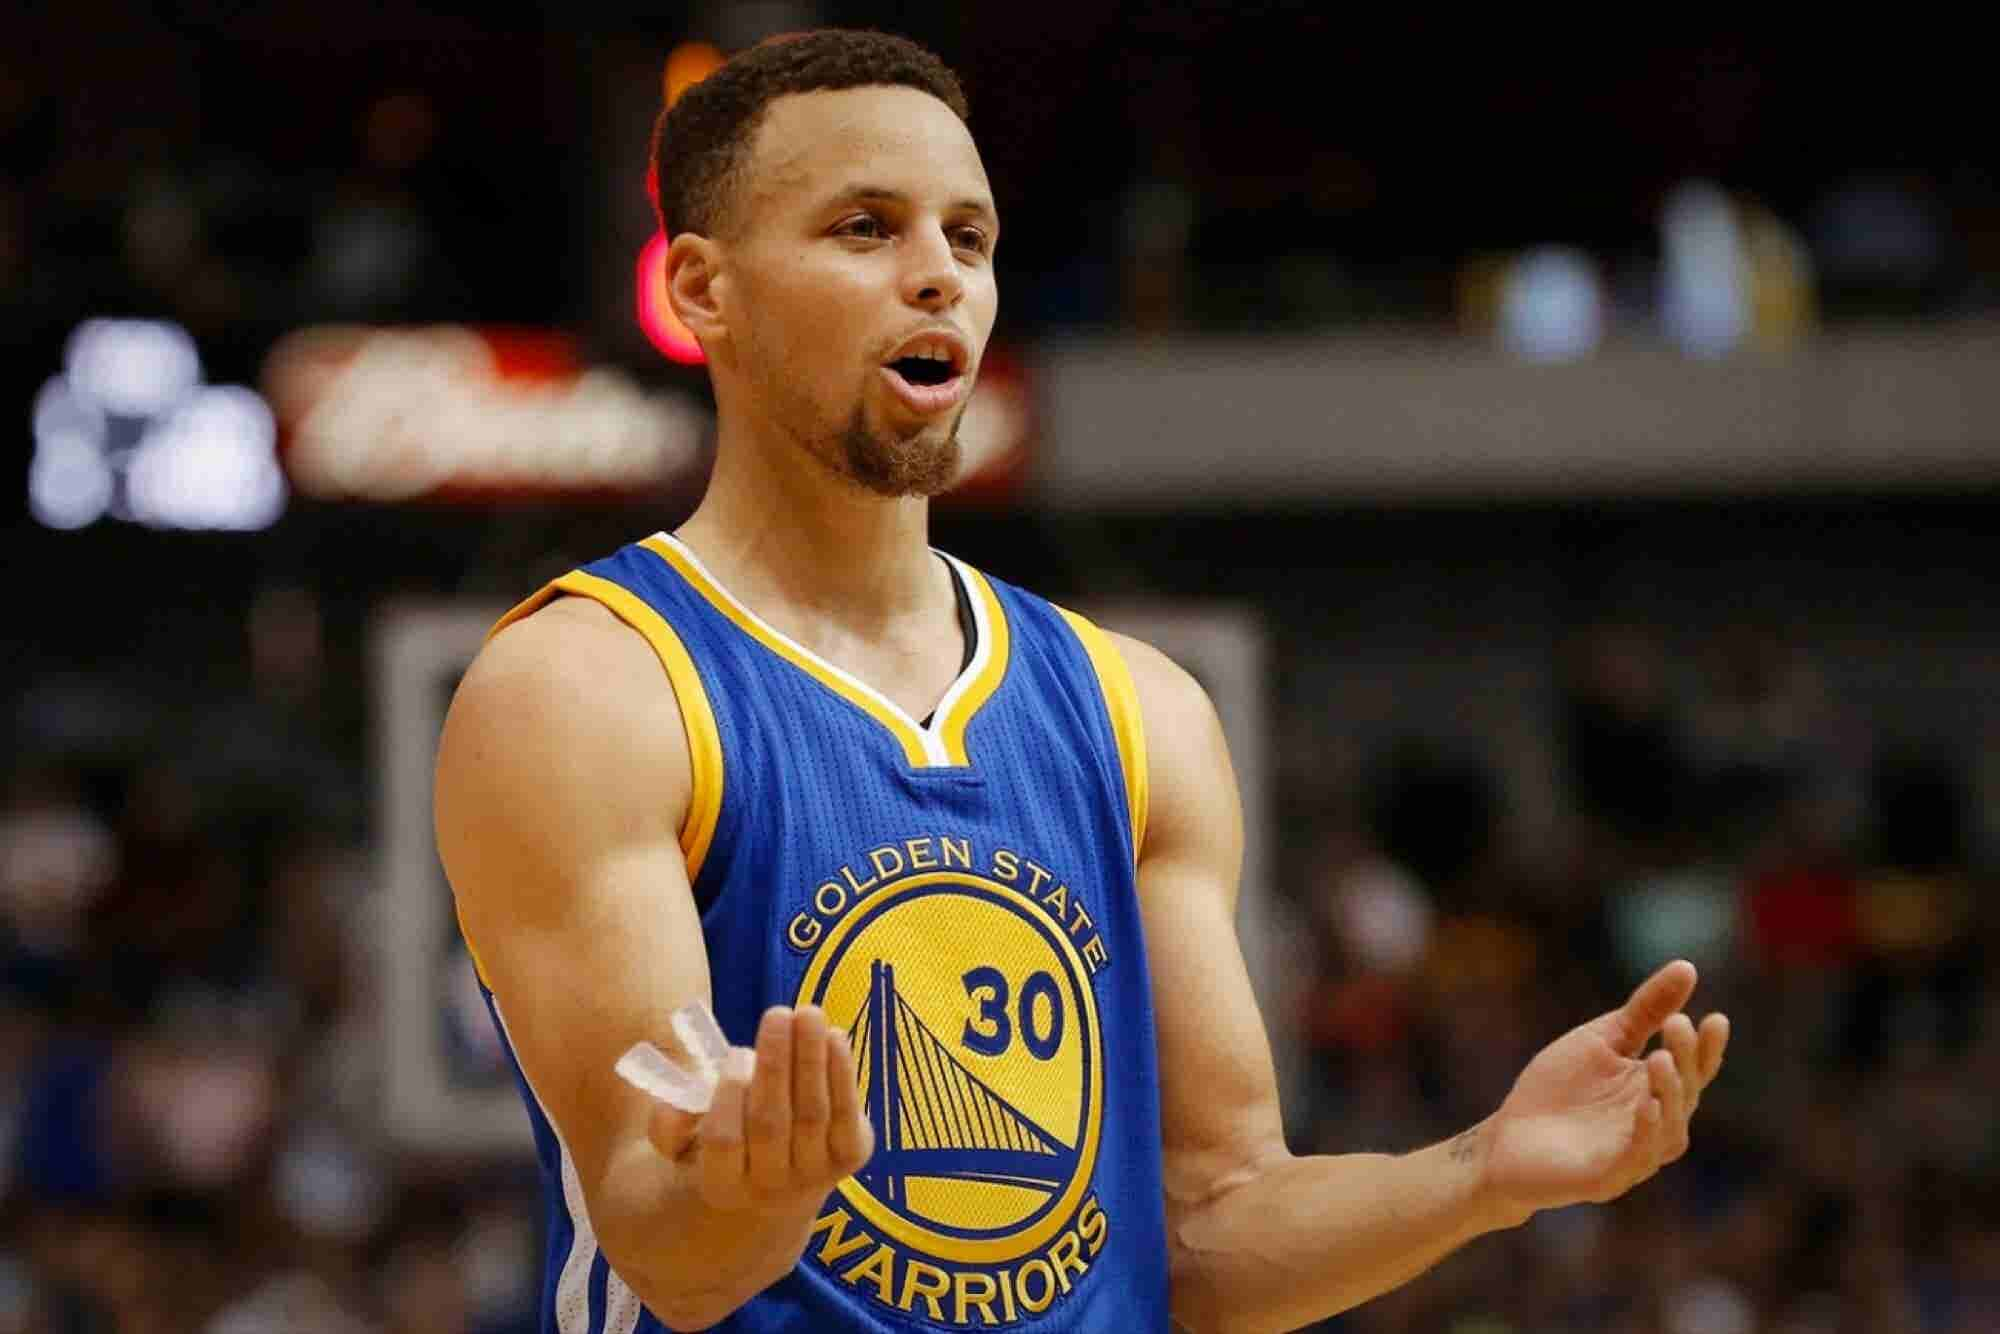 A Simple and Avoidable Flub Caused Nike to Lose Stephen Curry to Under Armour